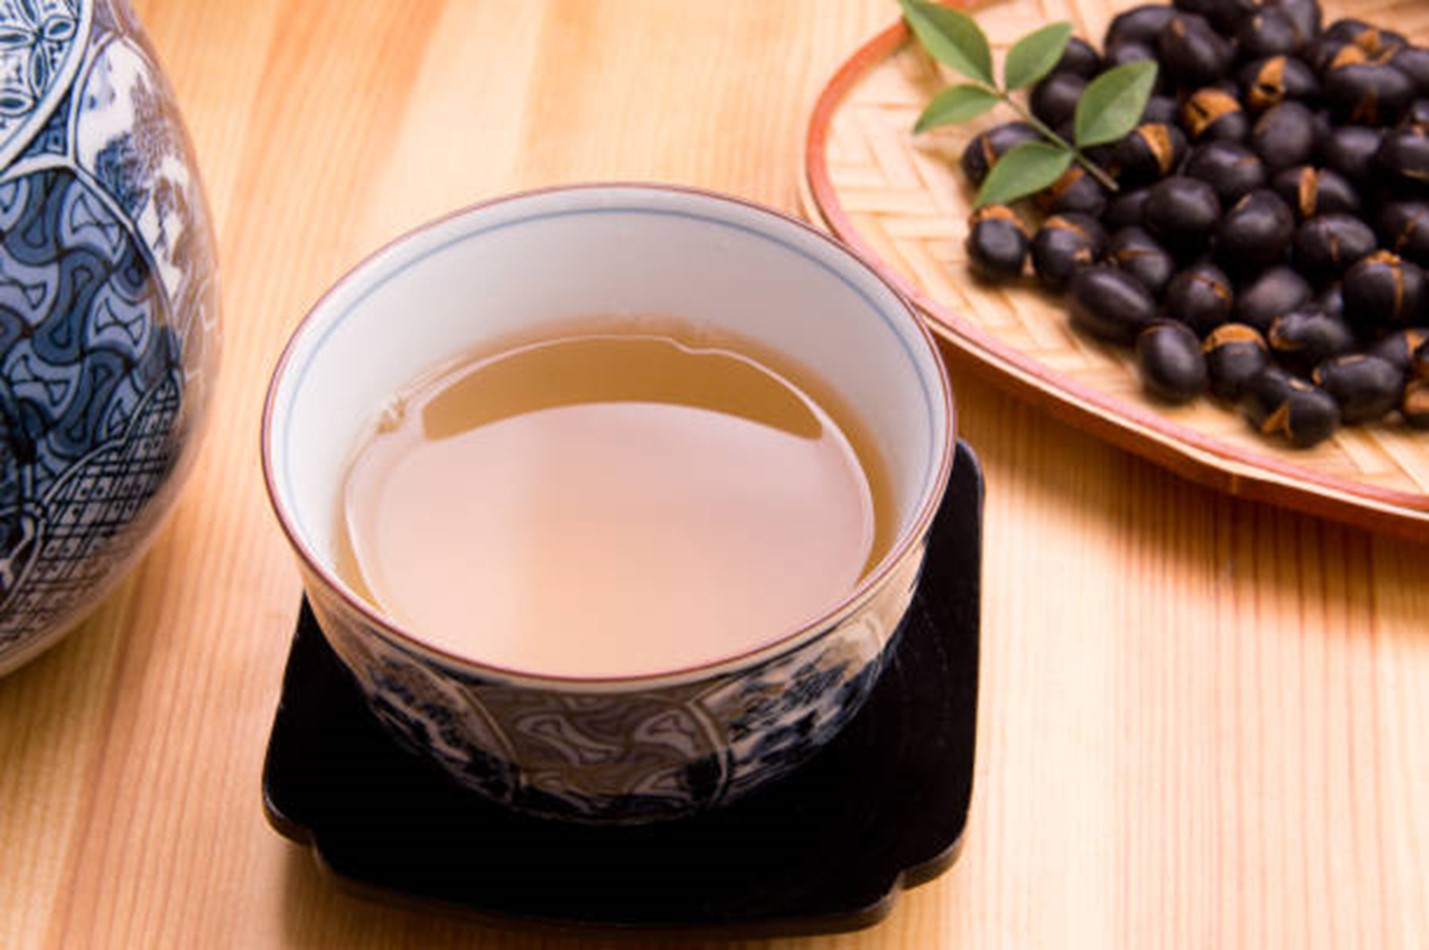 Organic black bean tea is great for improved blood flow.